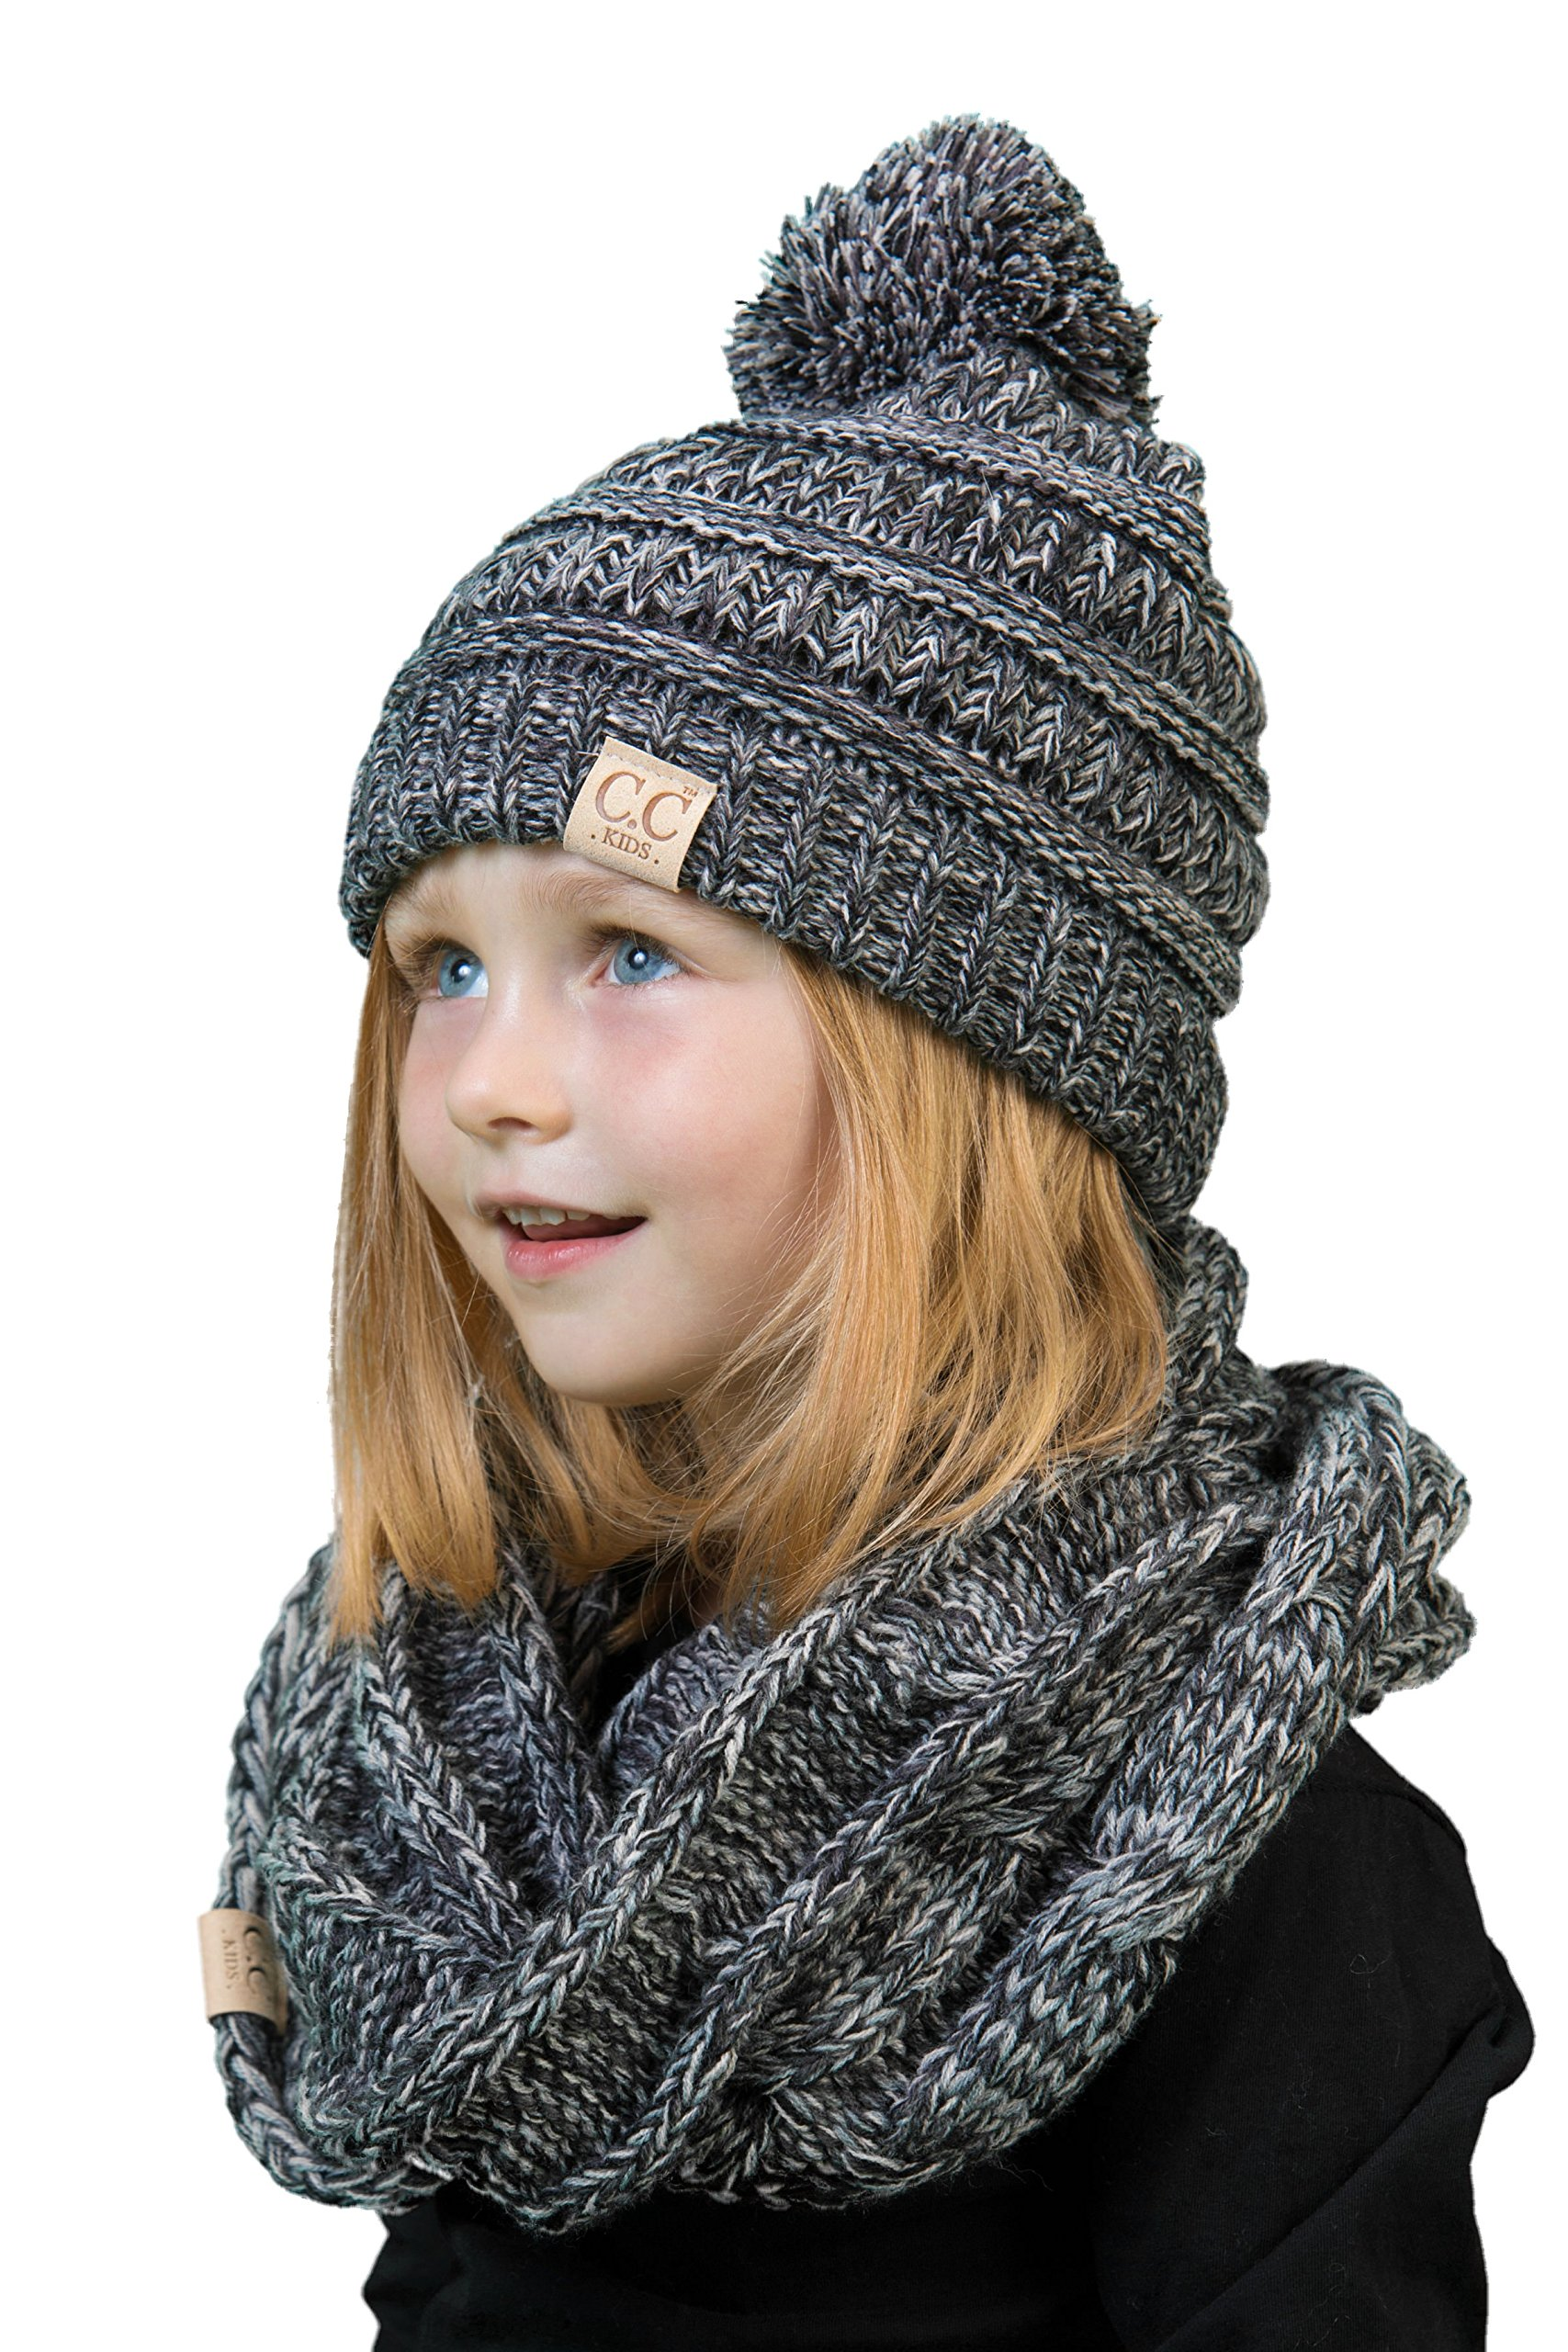 K1-6847-816.21 Kids Scarf & POM Beanie Matching Bundle Set - Grey/Black 4#31